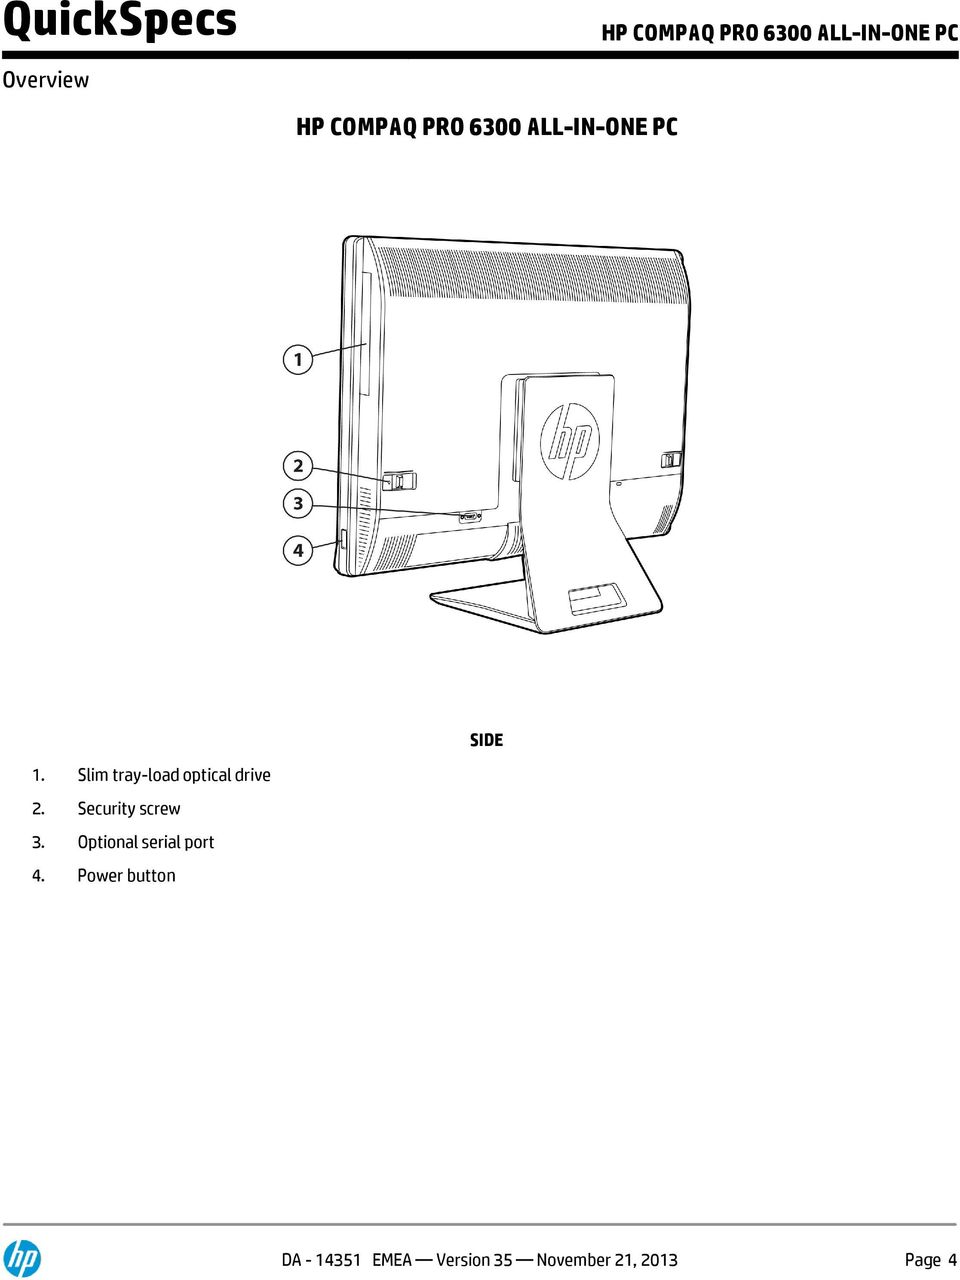 HP COMPAQ PRO 6300 ALL-IN-ONE PC FRONT - PDF